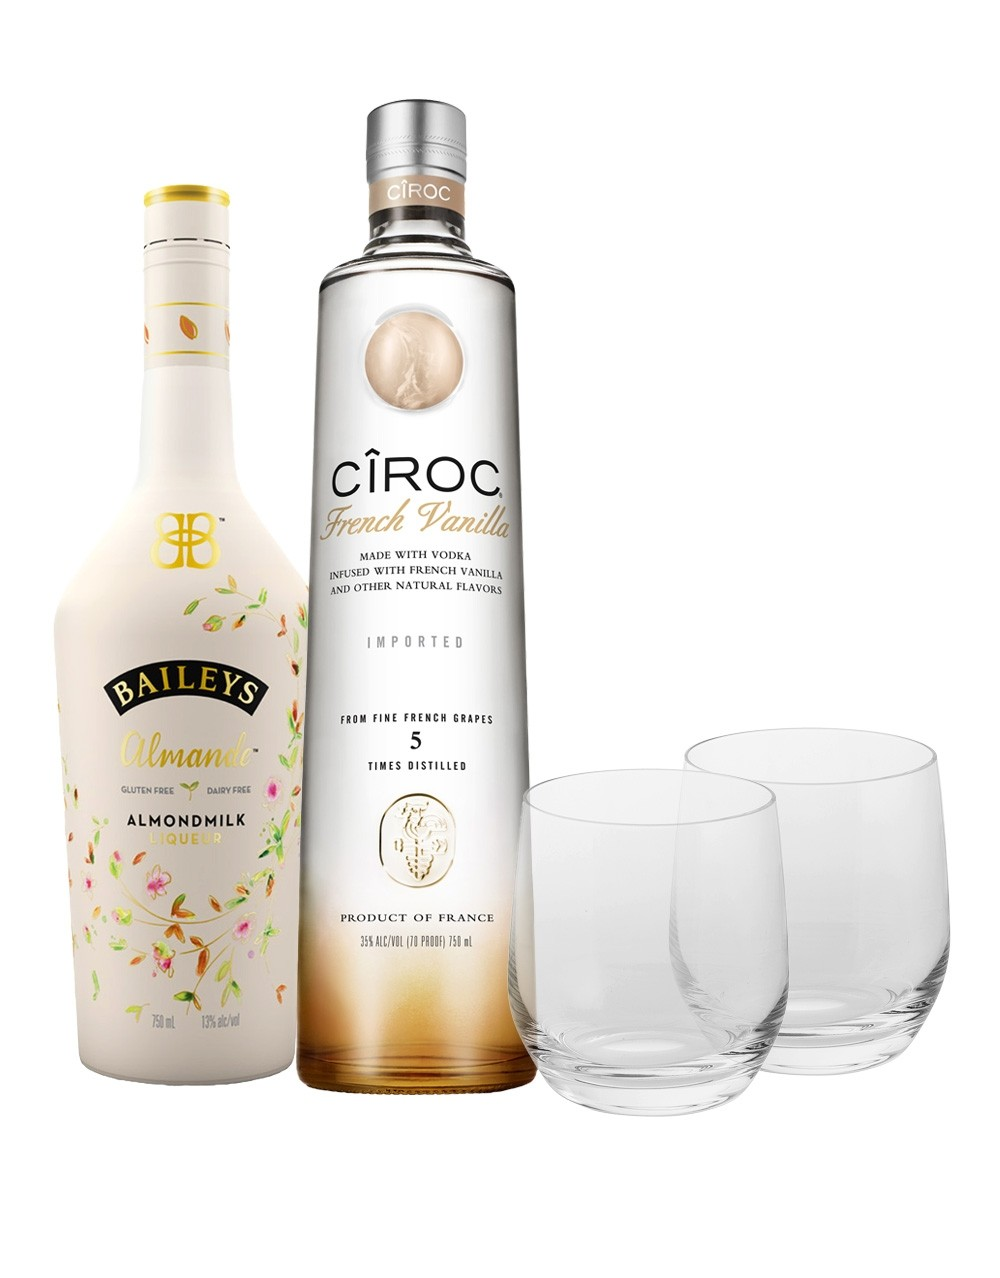 CÎROC French Vanilla Iced Coffee Cocktail Gift Set | Buy Online or Send as a Gift | ReserveBar